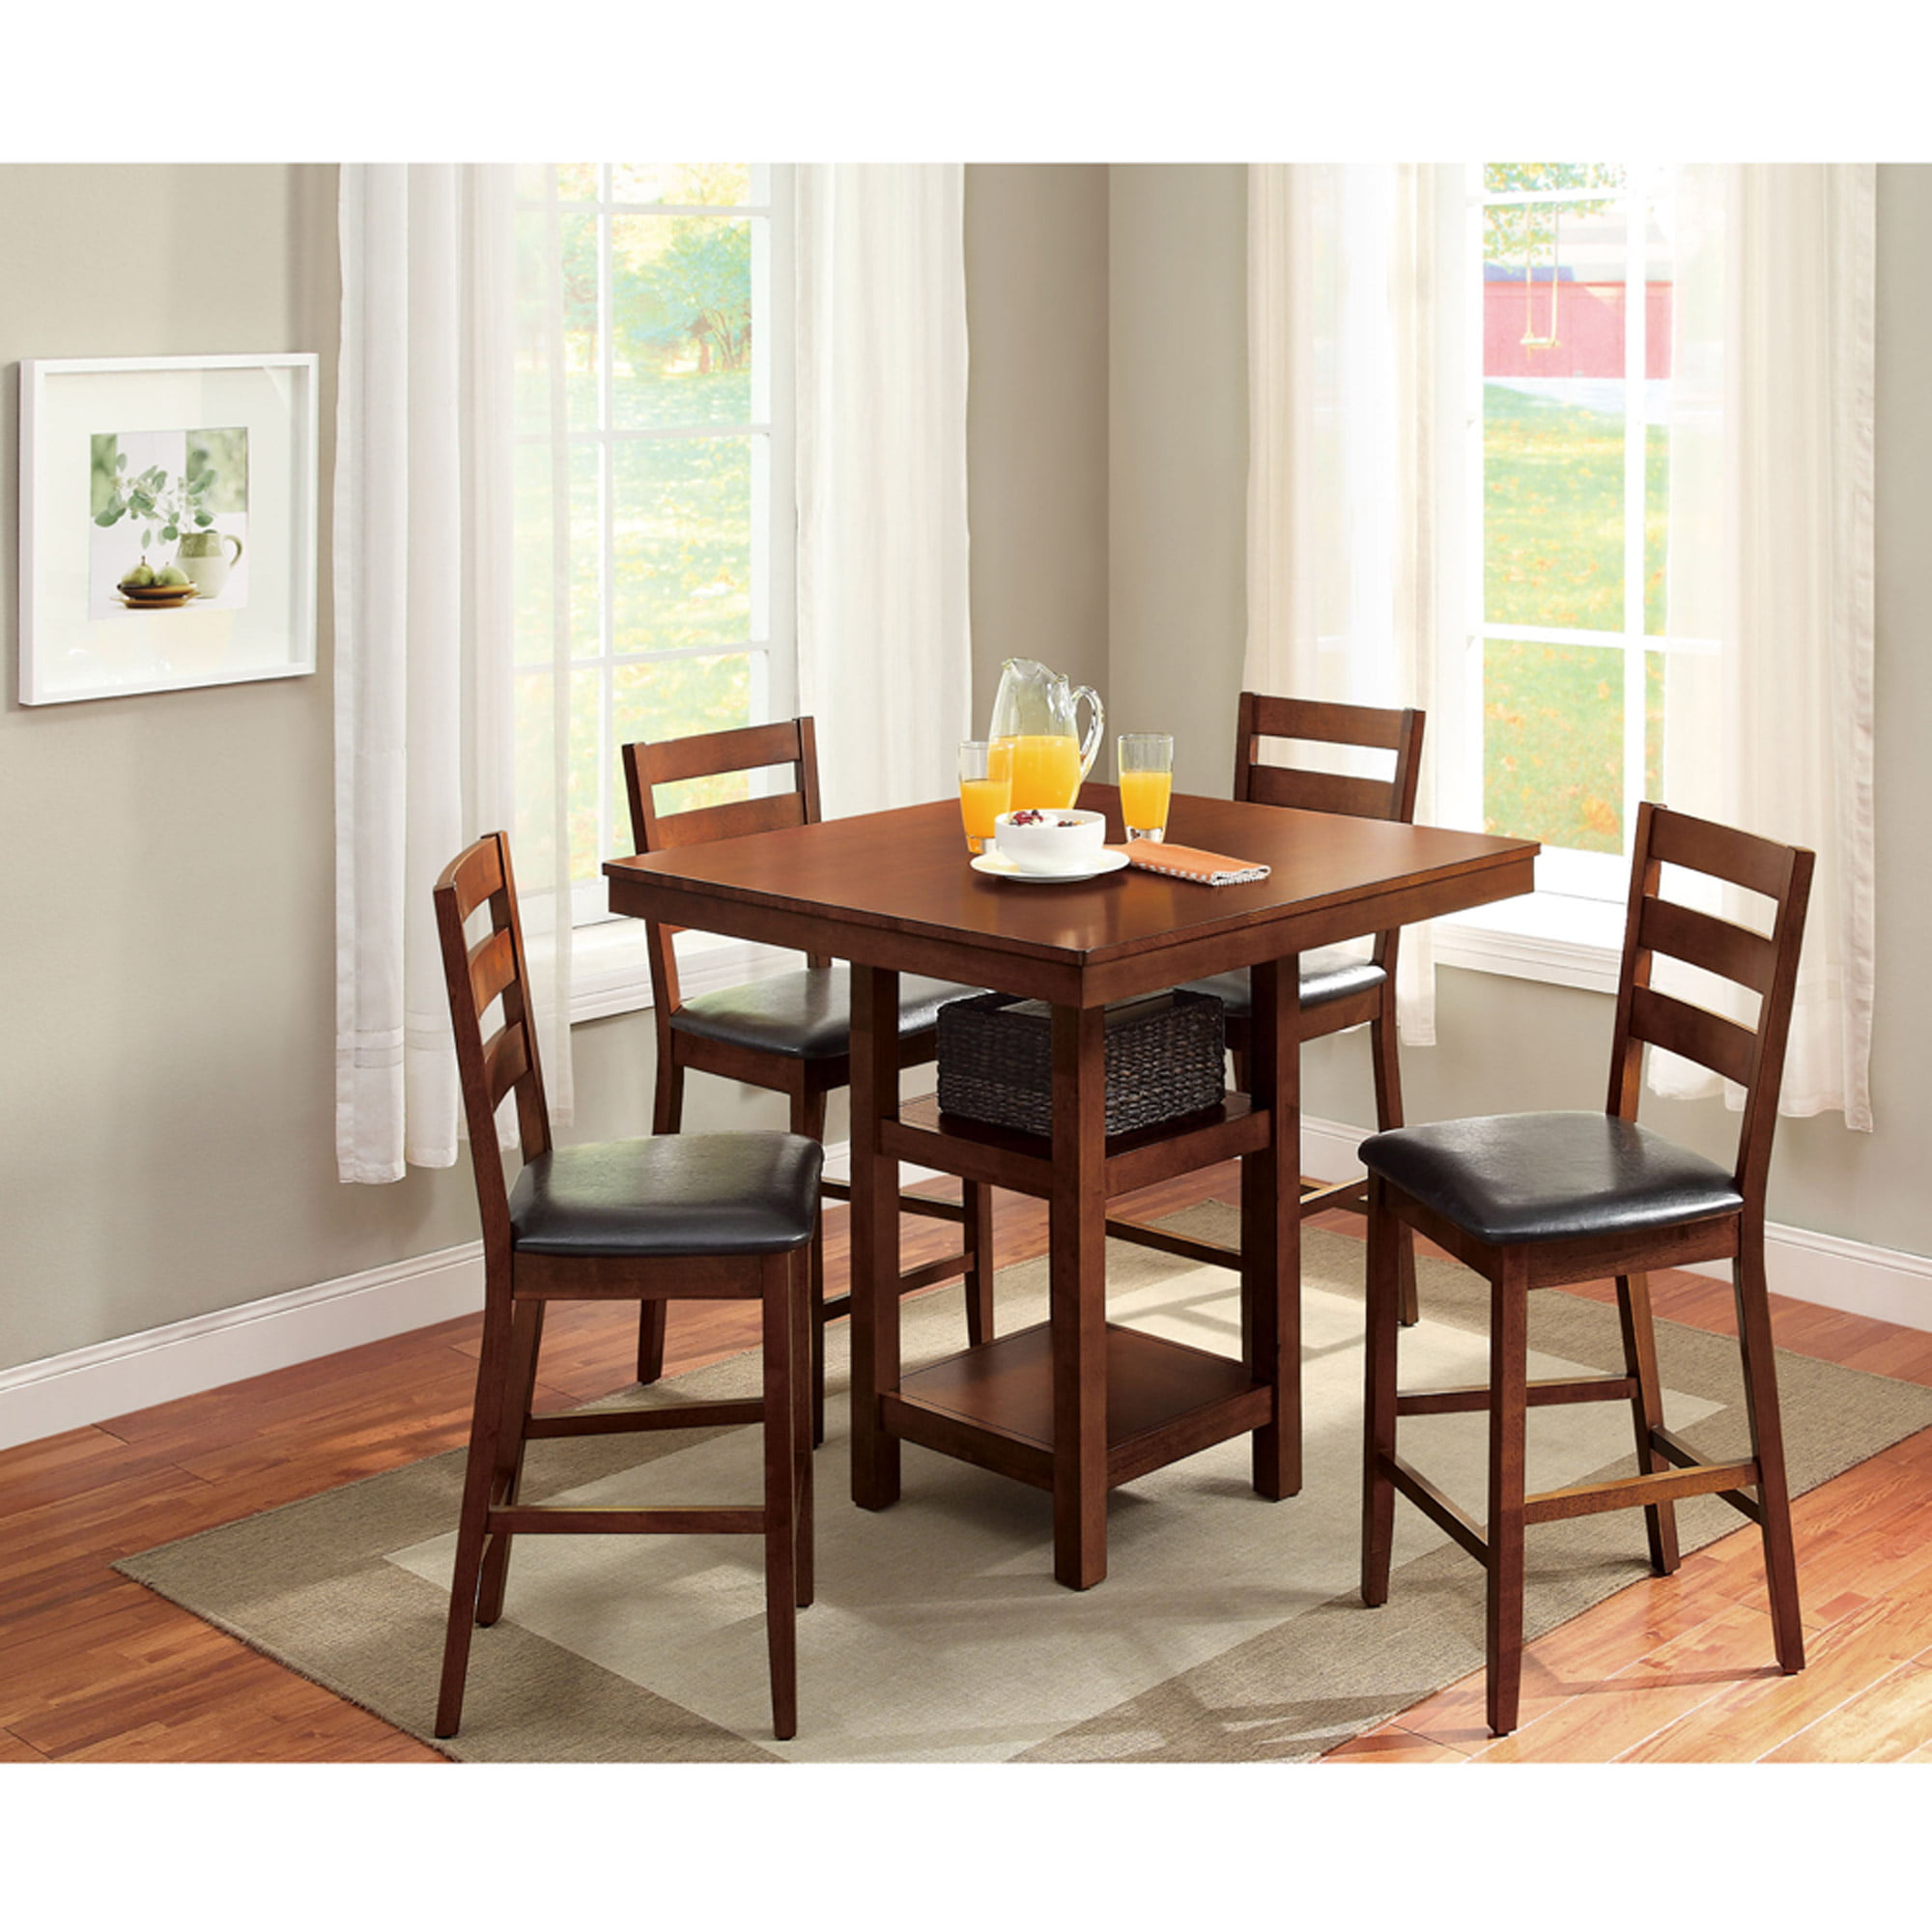 Dining Room Table Set Best Kitchen & Dining Furniture  Walmart Decorating Inspiration